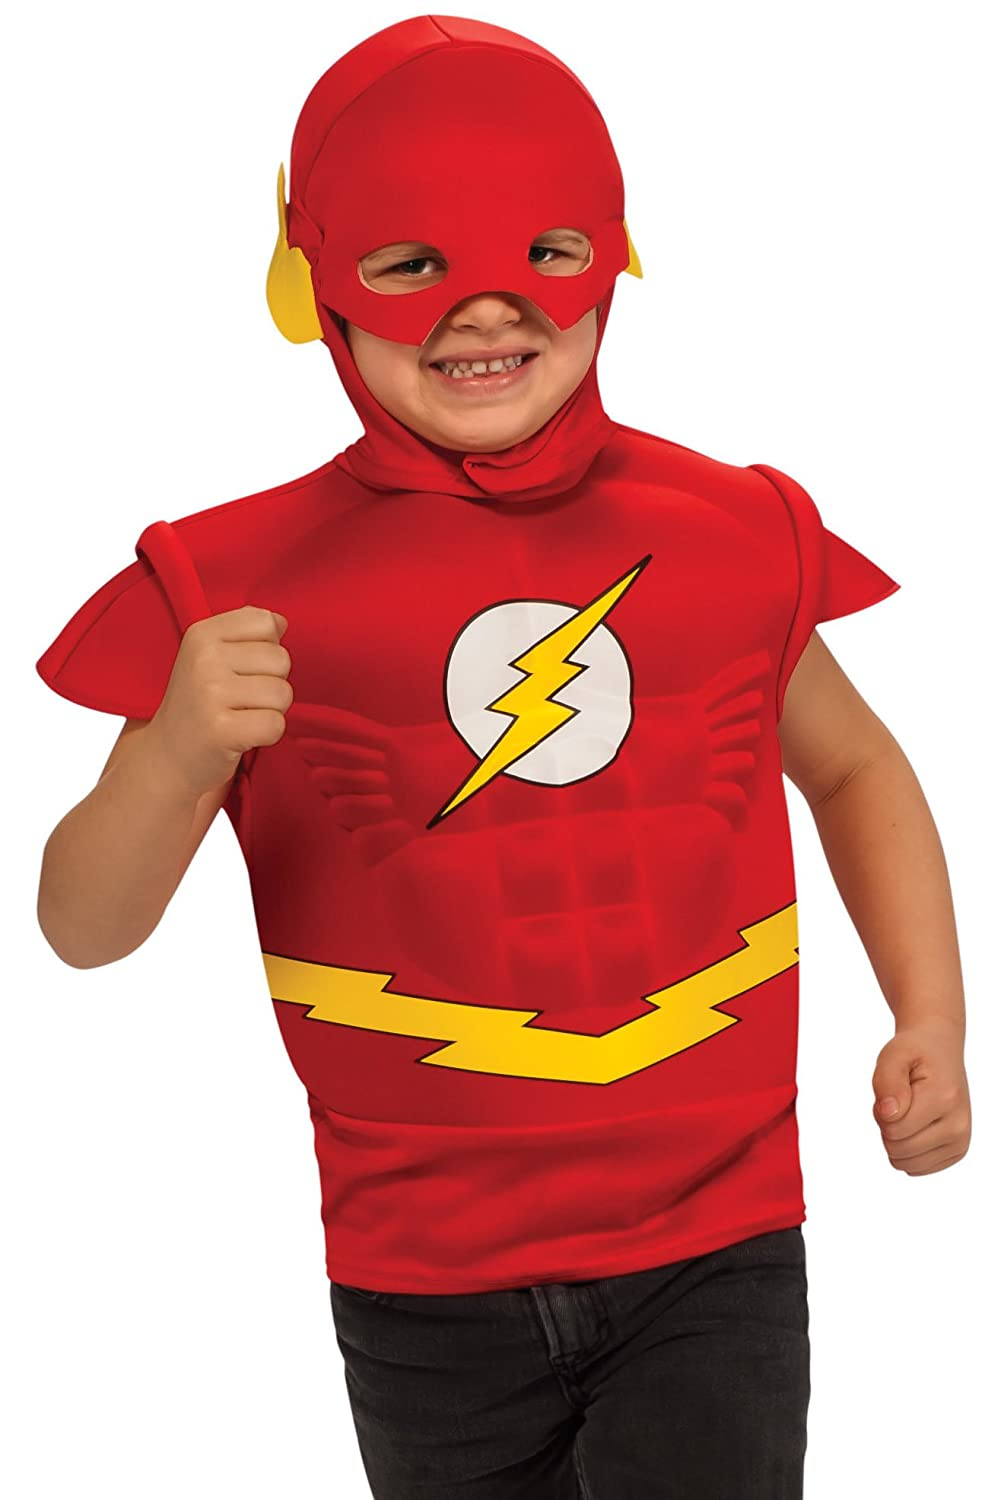 Amazon Flash Muscle Chest Costume Shirt With Cape And Headpiece